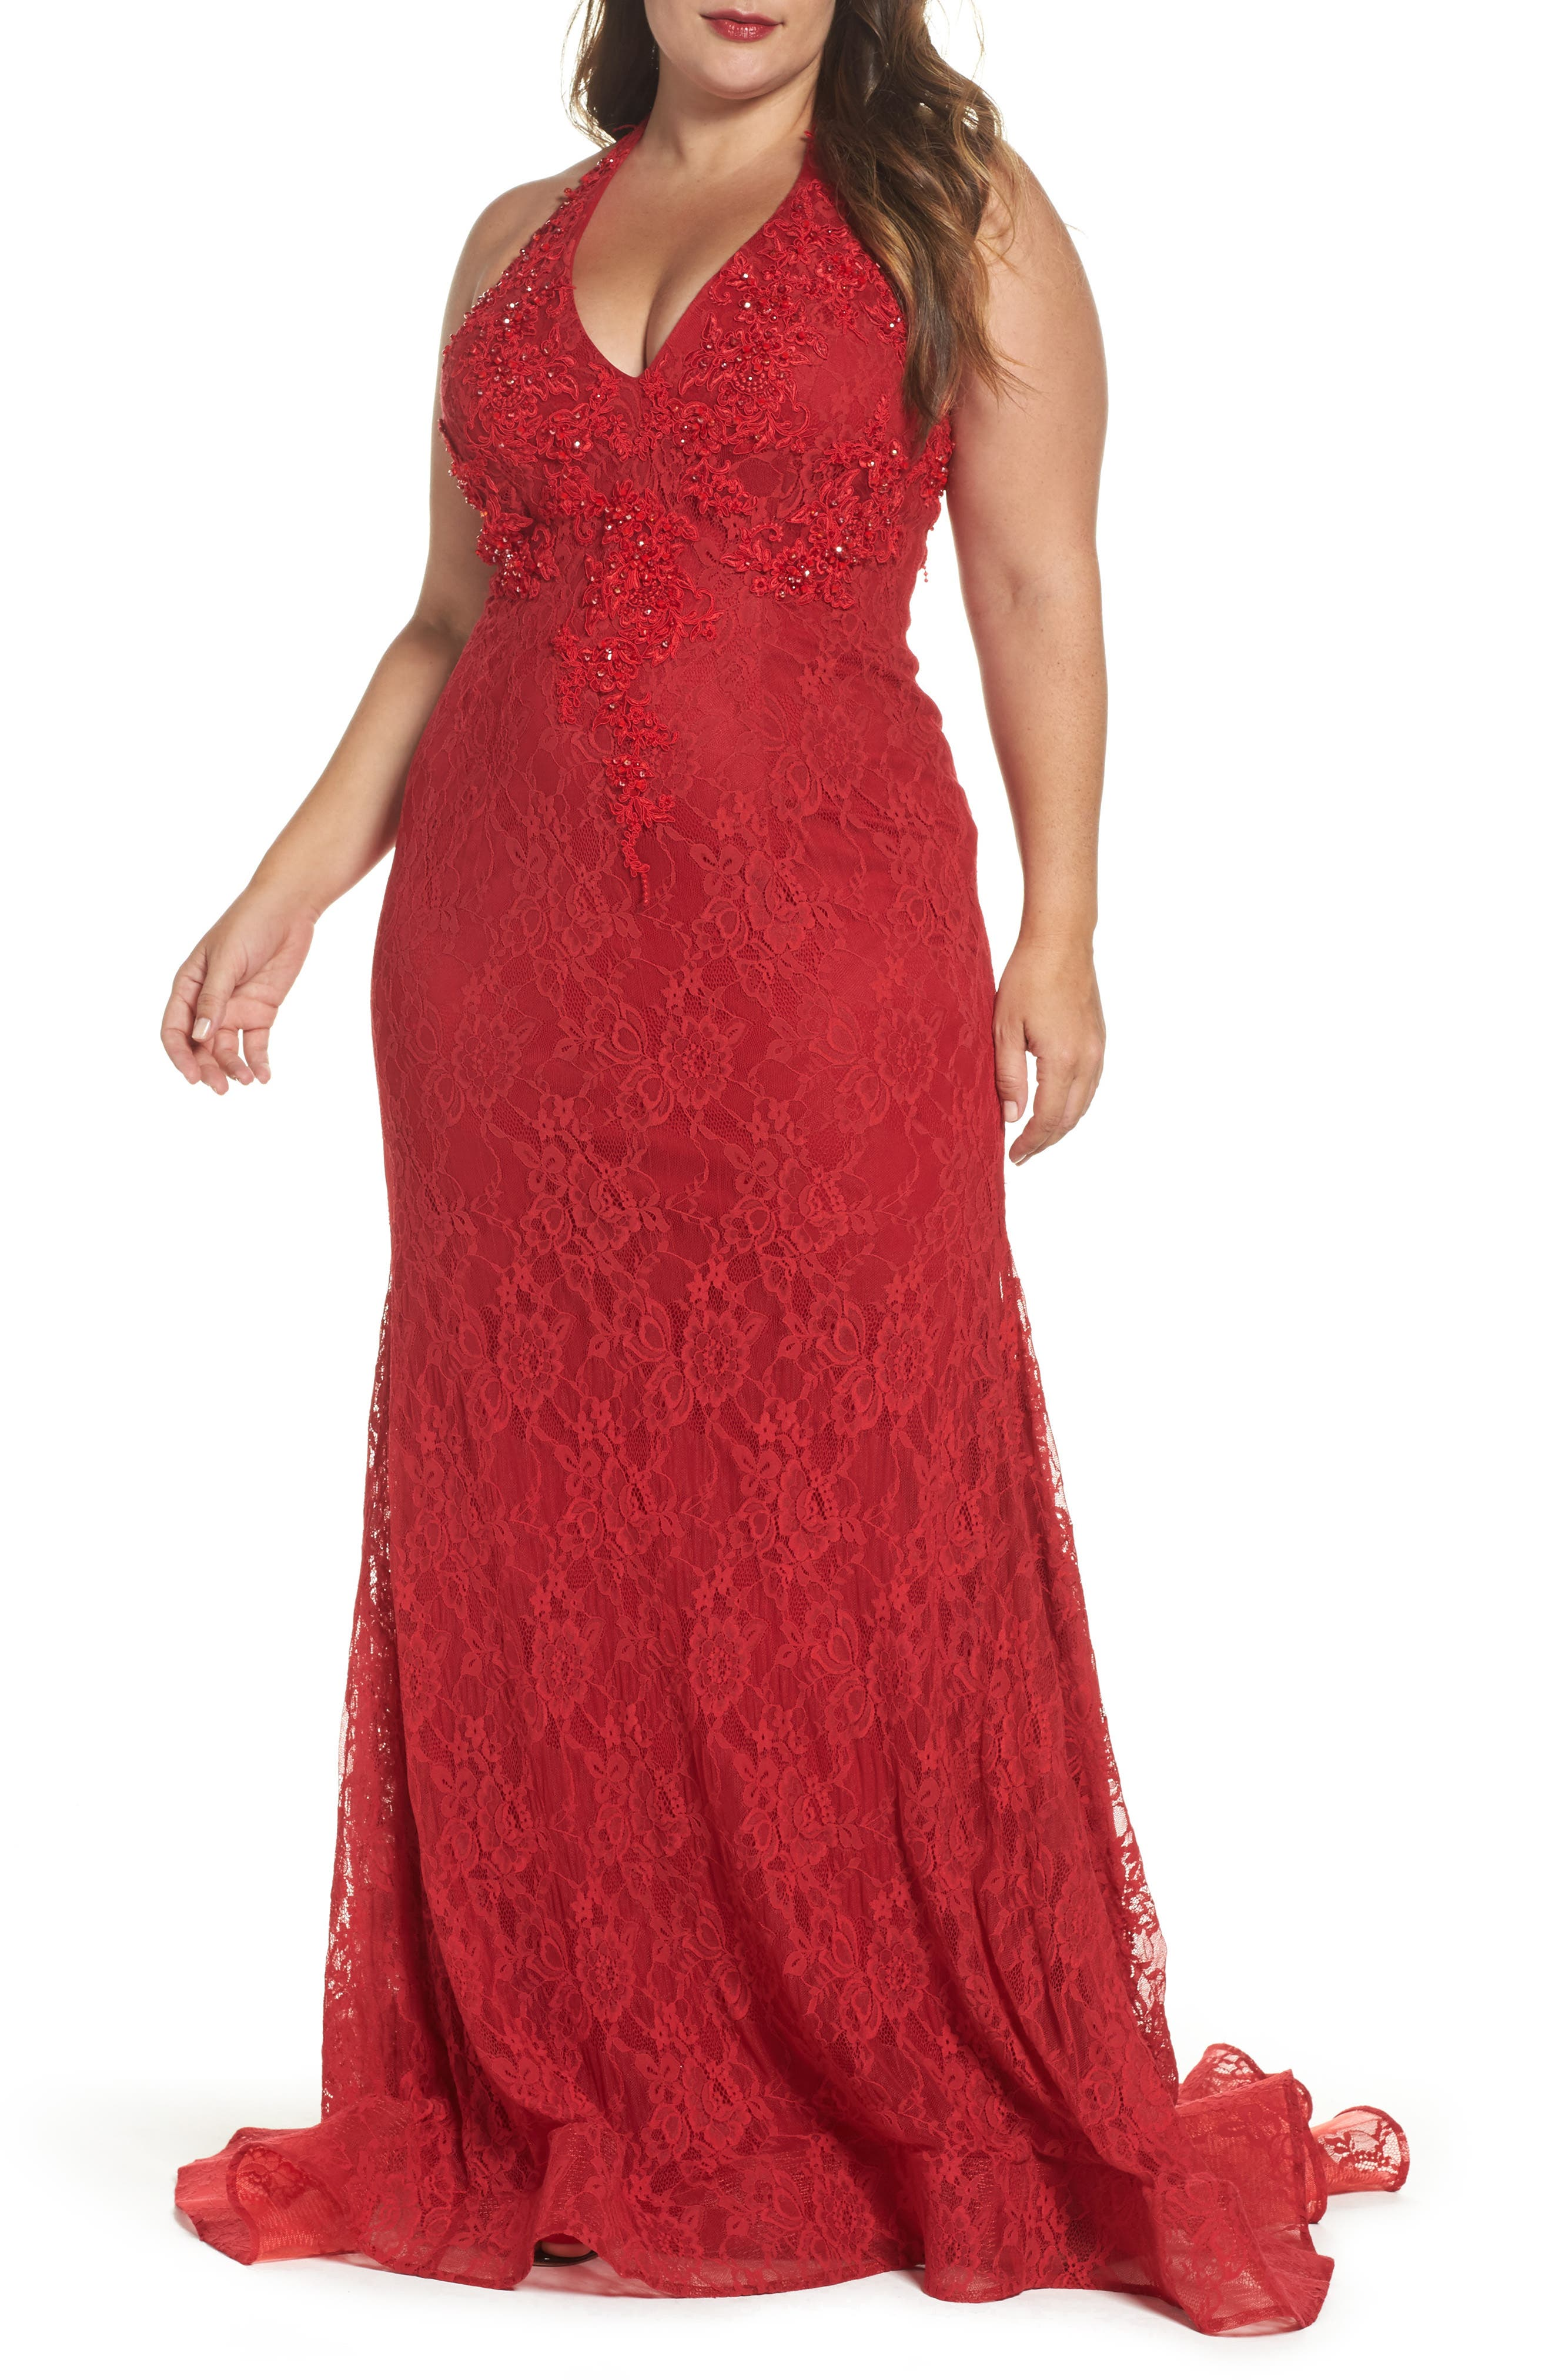 MacDuggal Lace Halter Dress,                         Main,                         color, Red